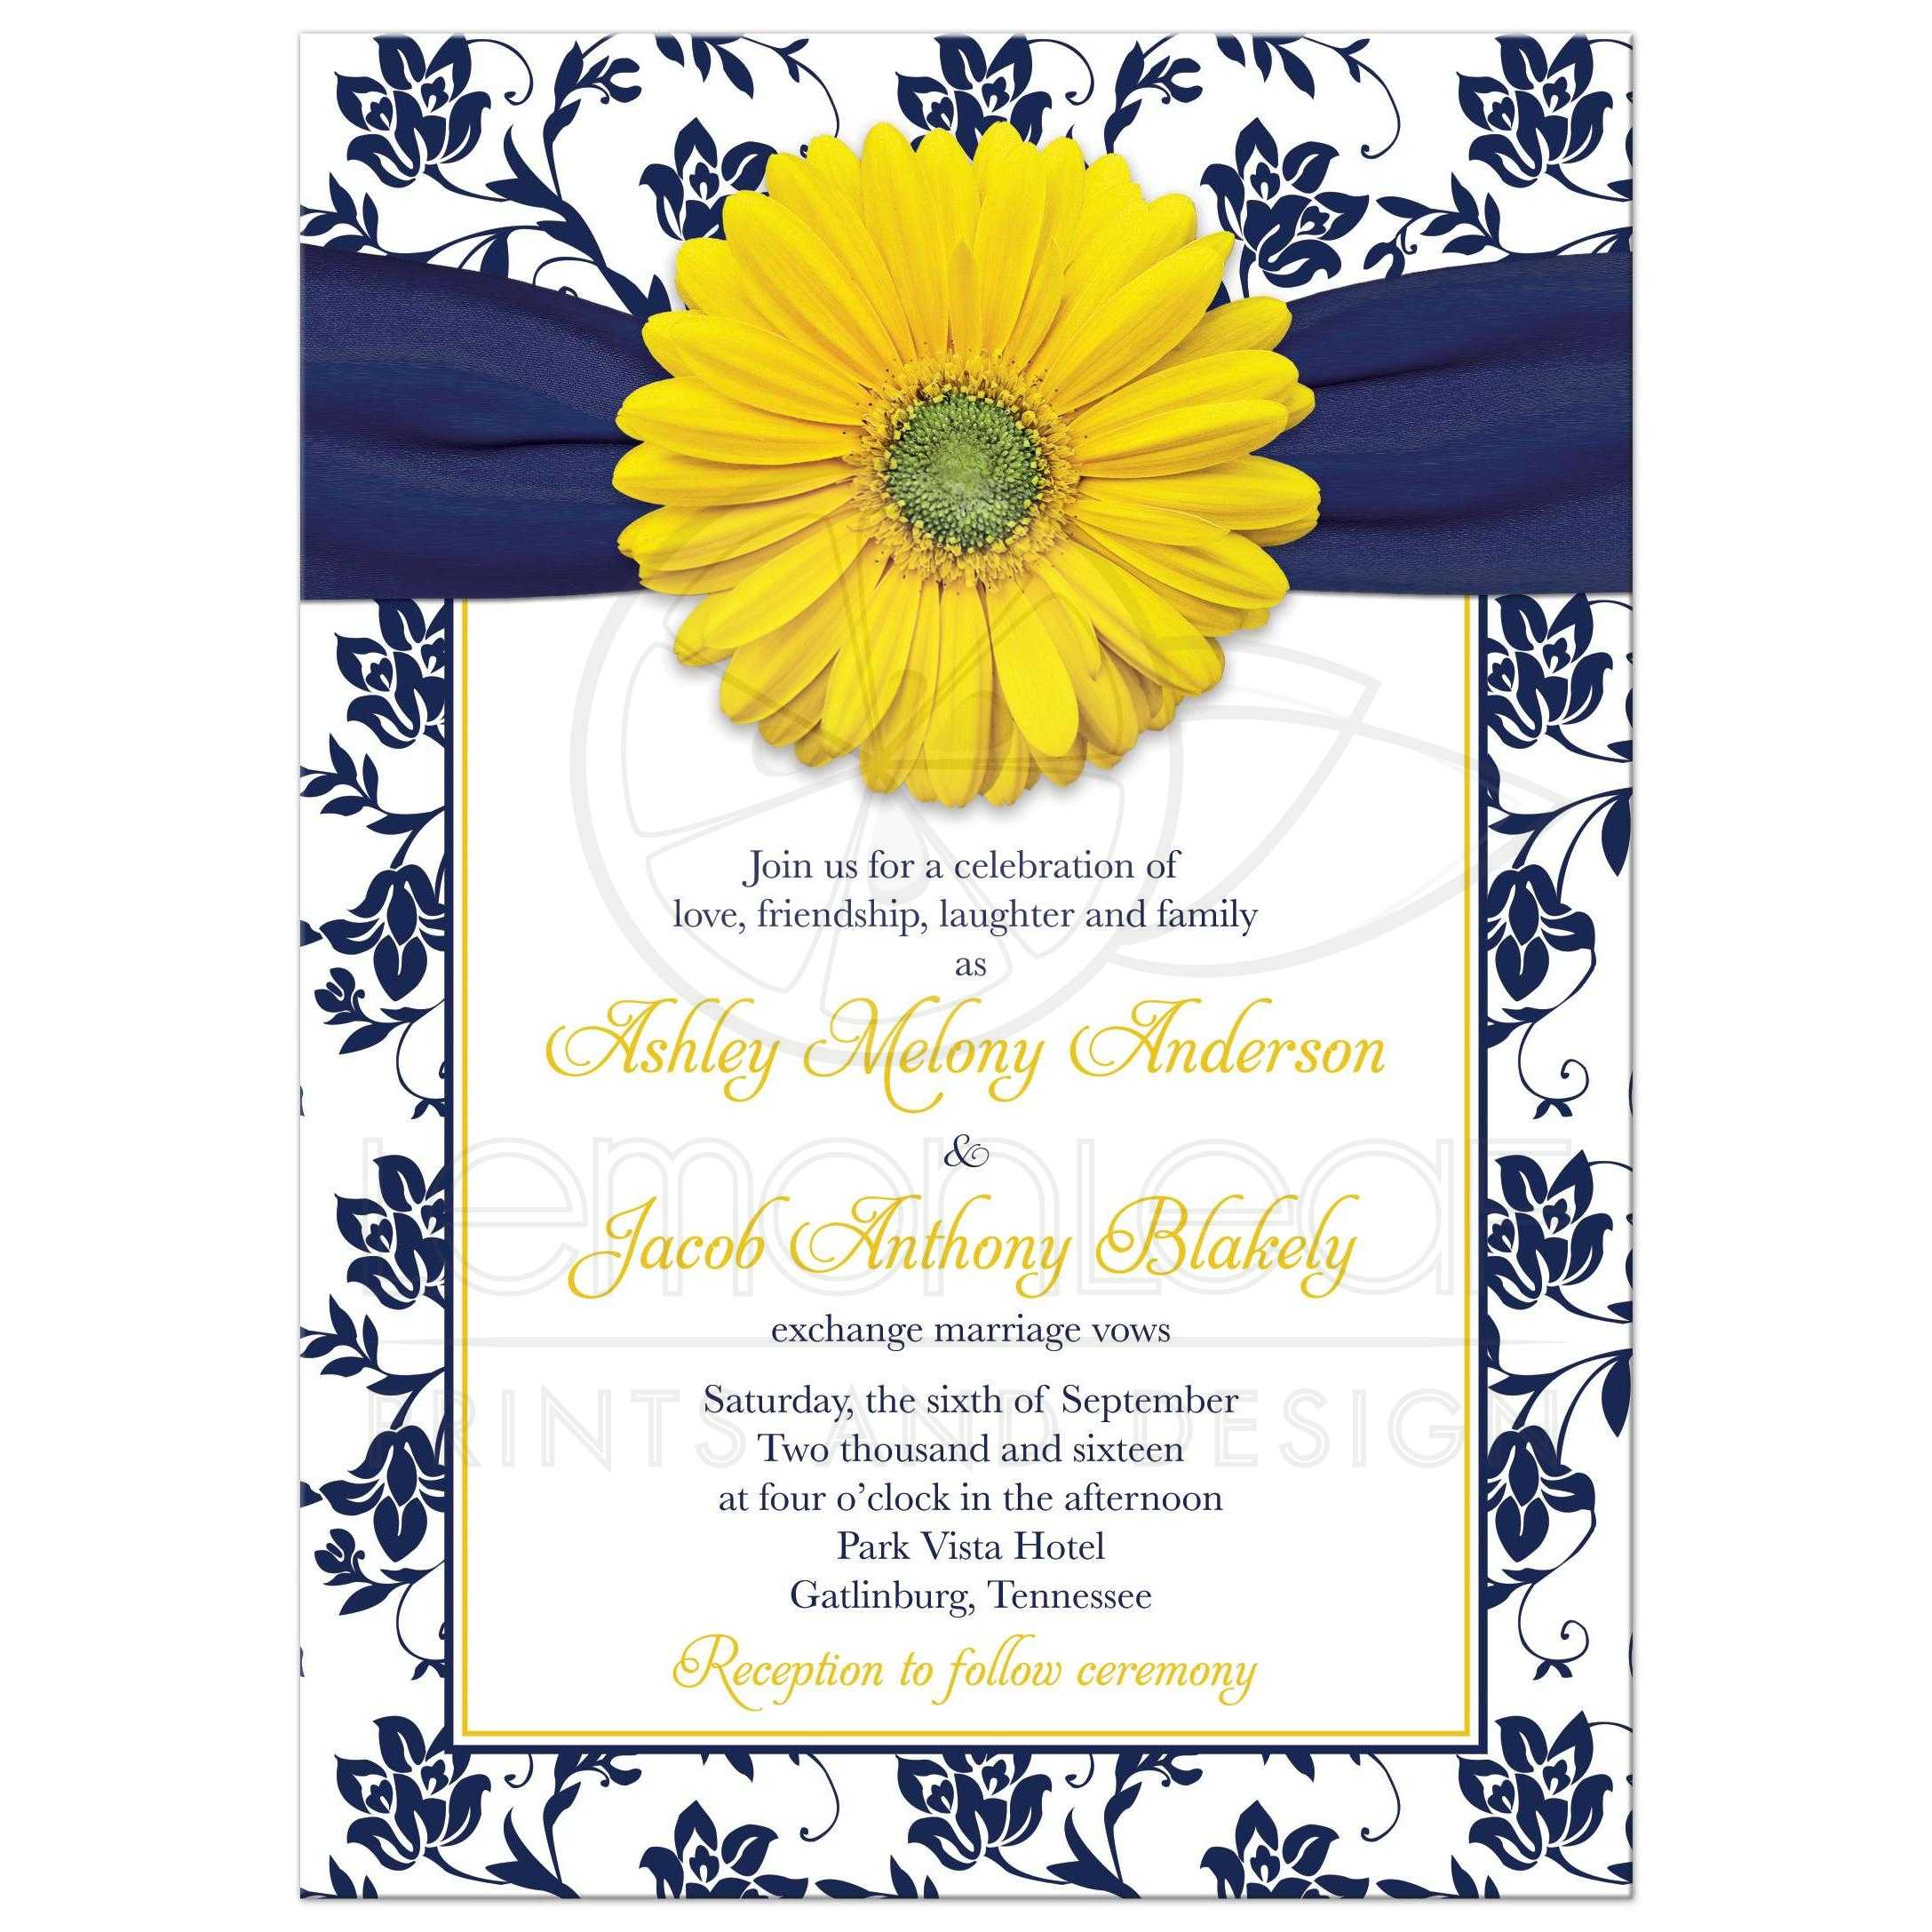 Yellow Daisy Navy Floral Wedding Invitation Navy Blue Yellow Damask